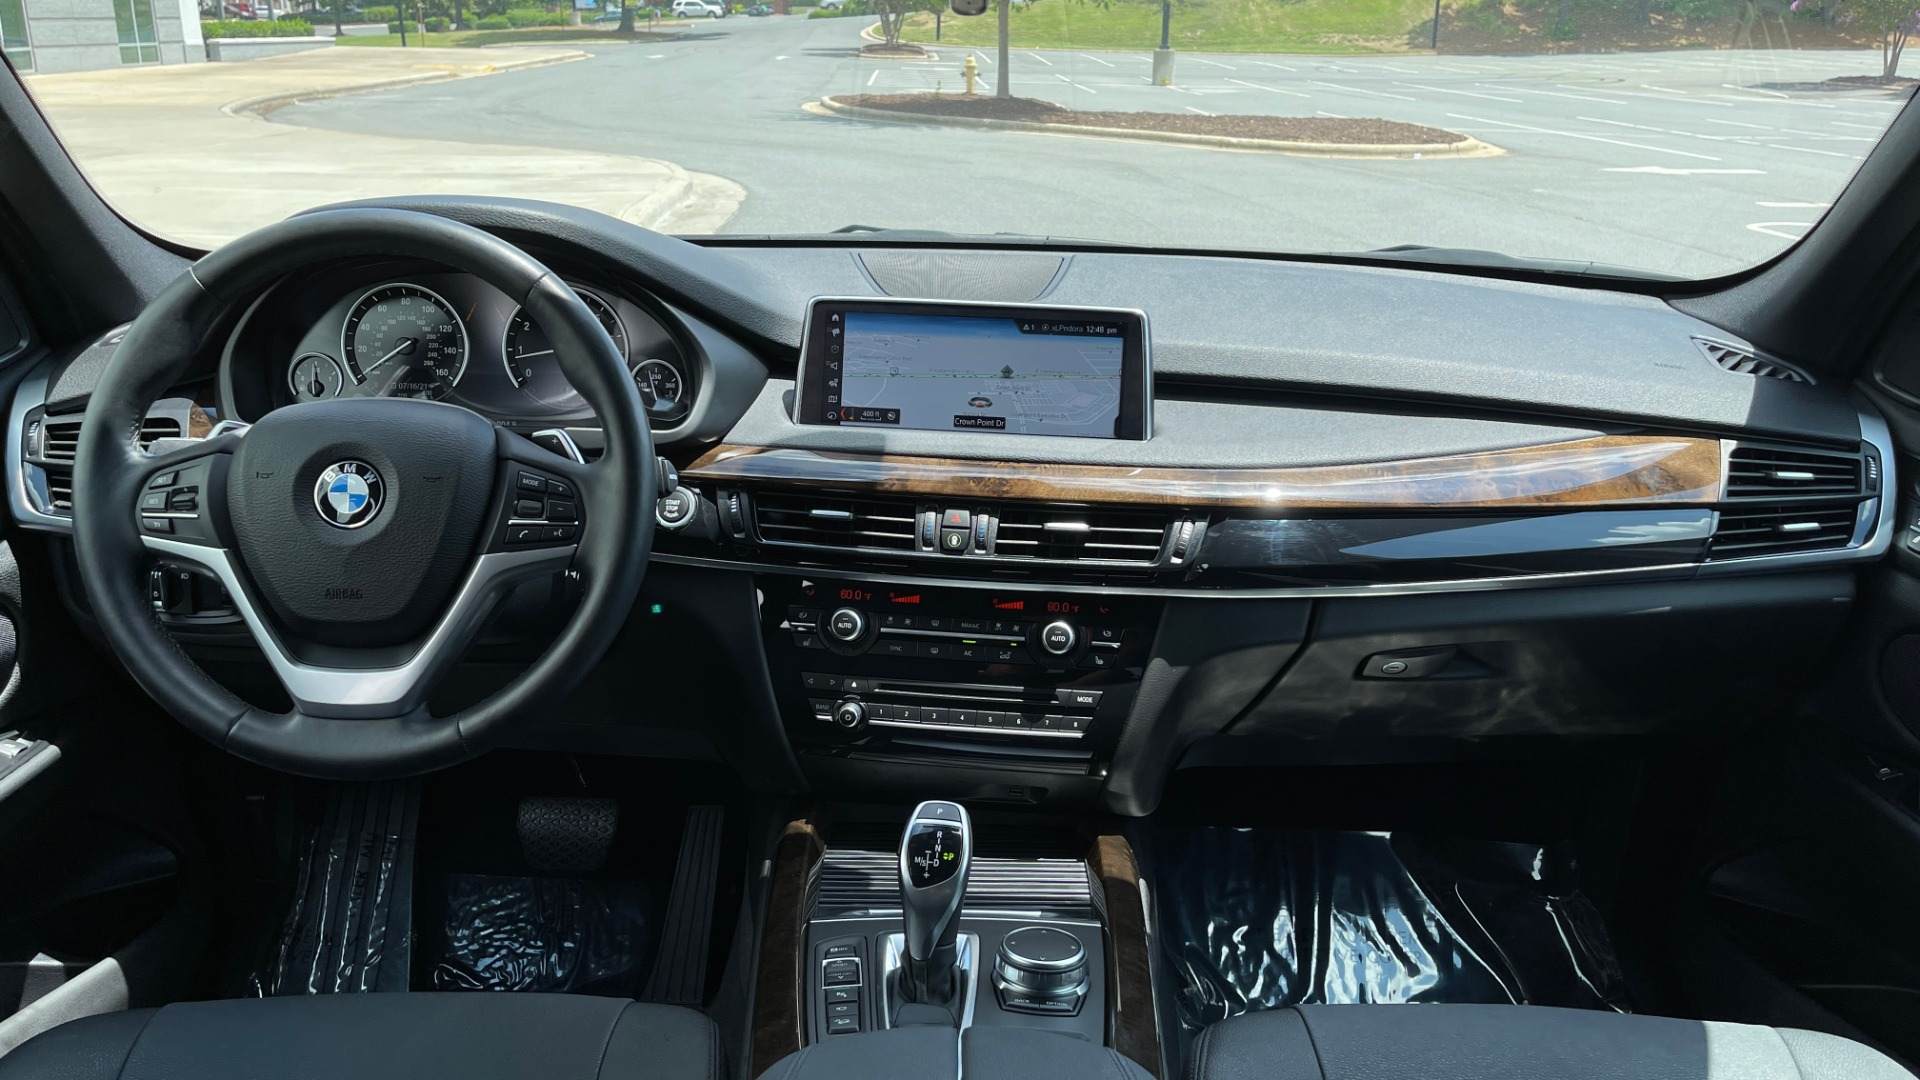 Used 2018 BMW X5 XDRIVE35I PREMIUM / DRVR ASST / WIRELESS CHARGING / CAMERAS for sale $46,995 at Formula Imports in Charlotte NC 28227 70